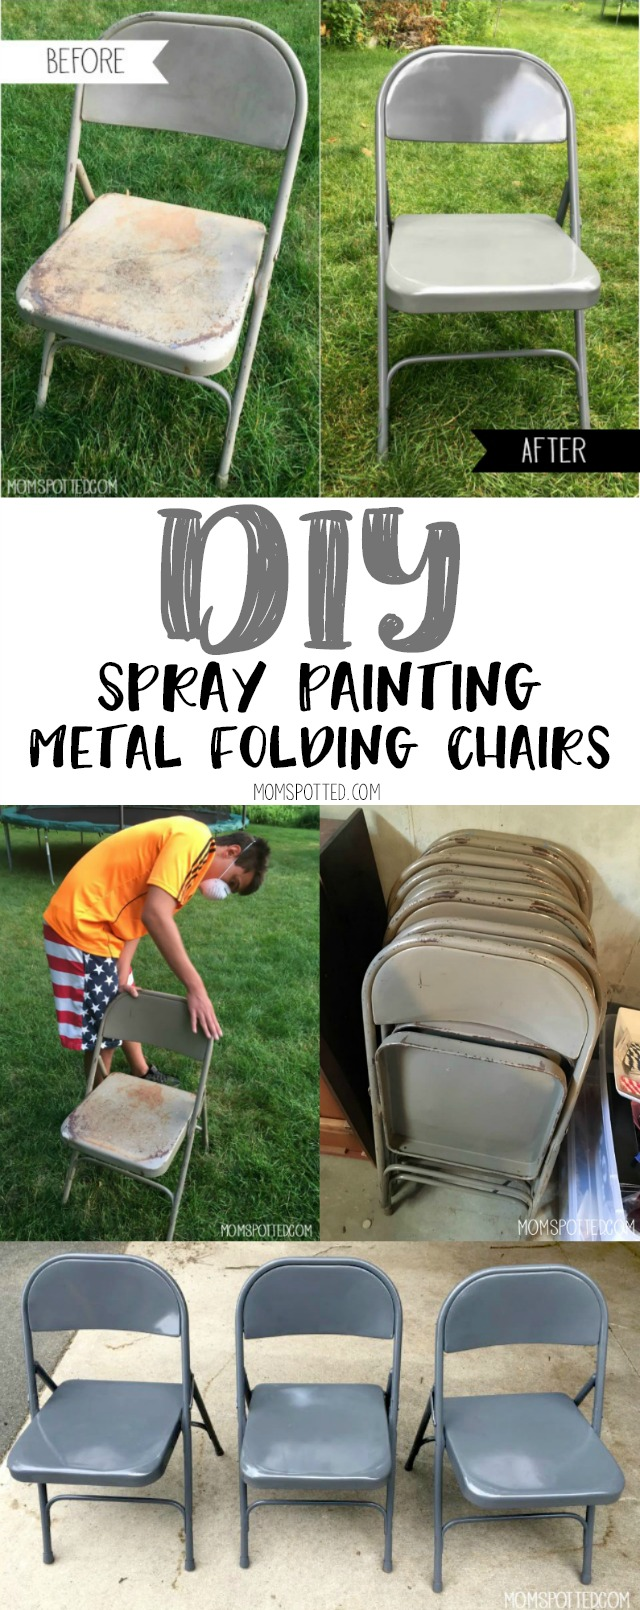 Diy Spray Painting Metal Folding Chairs Mom Spotted